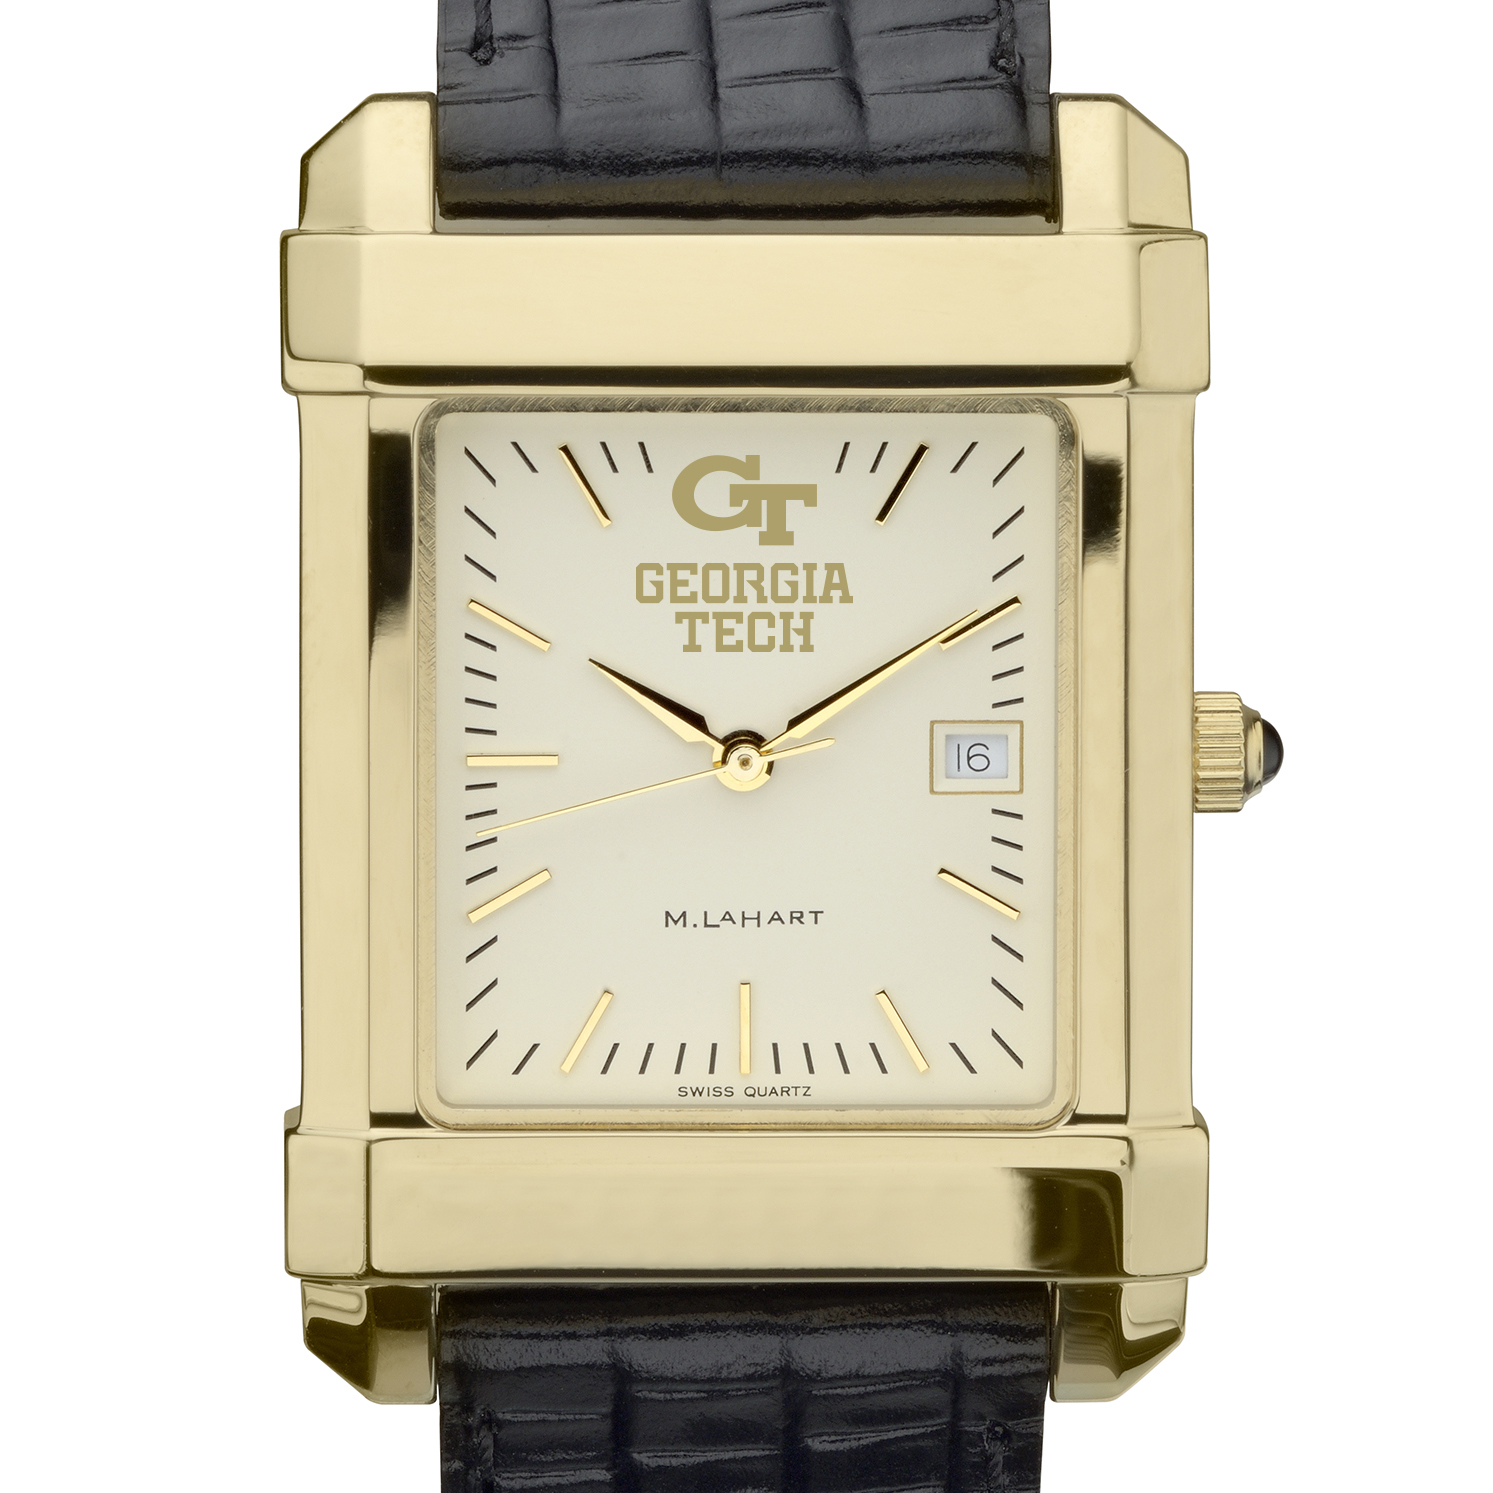 Georgia Tech Men's Gold Quad Watch with Leather Strap